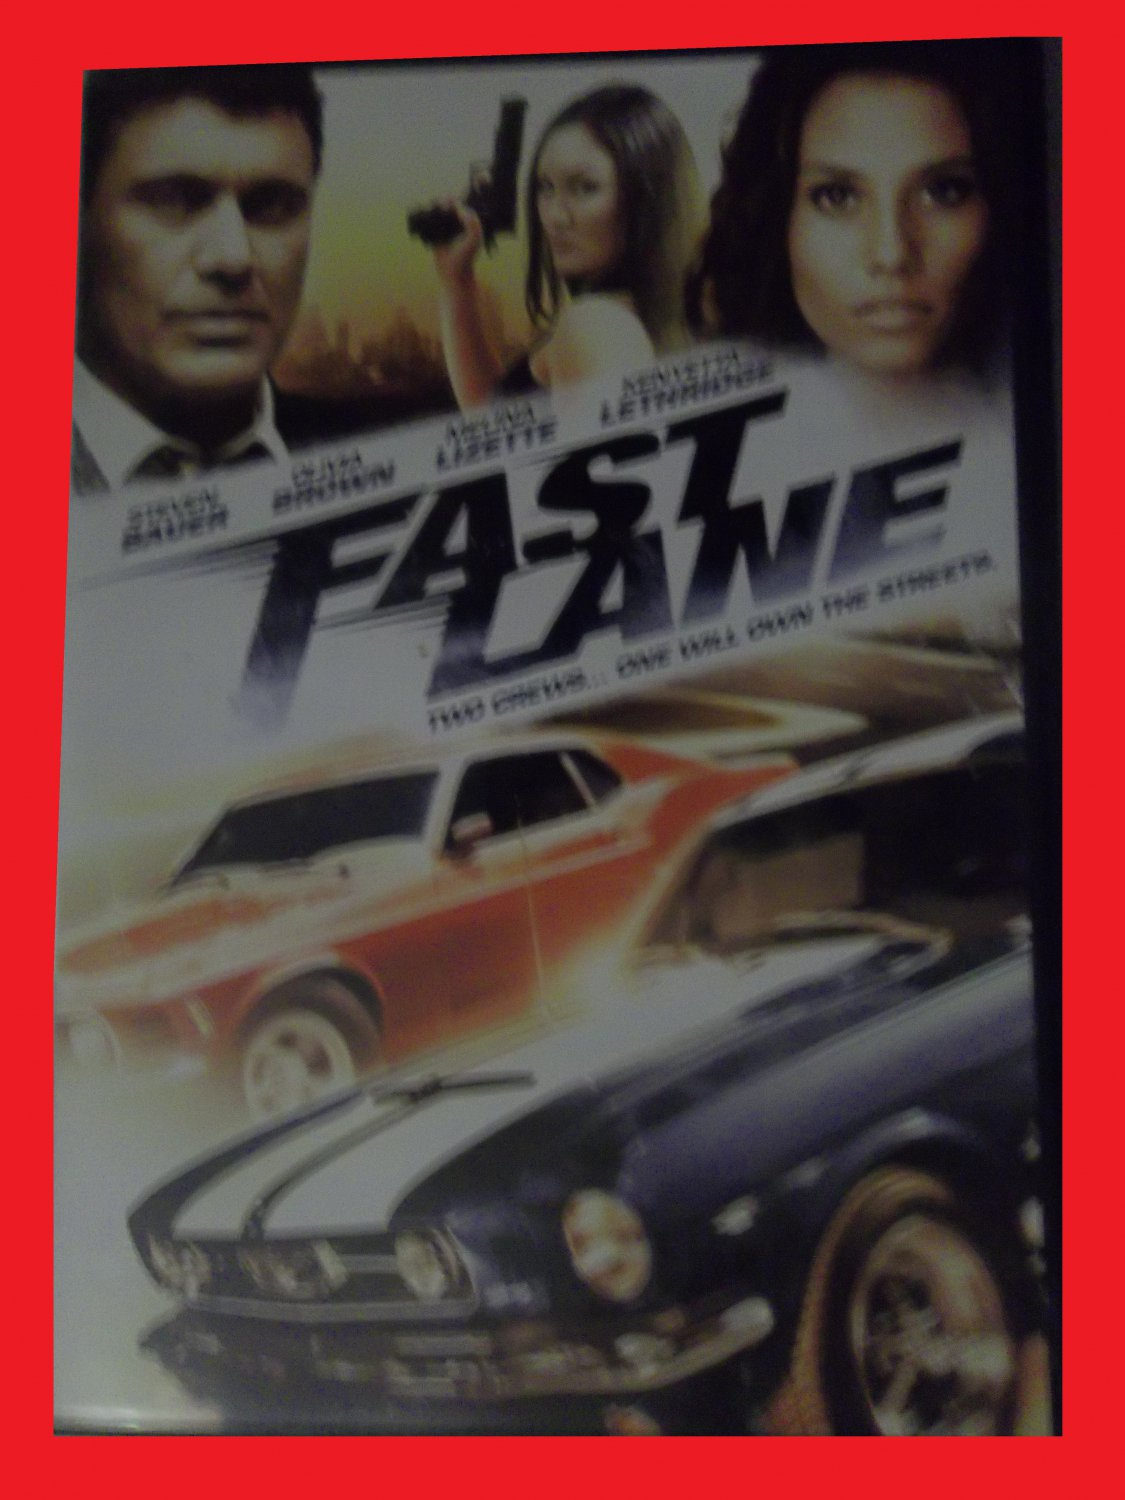 FAST LANE (FREE DVD & FAST SHIPPING) STEVEN BAUER (ACTION/SPORTS/ADVENTURE)